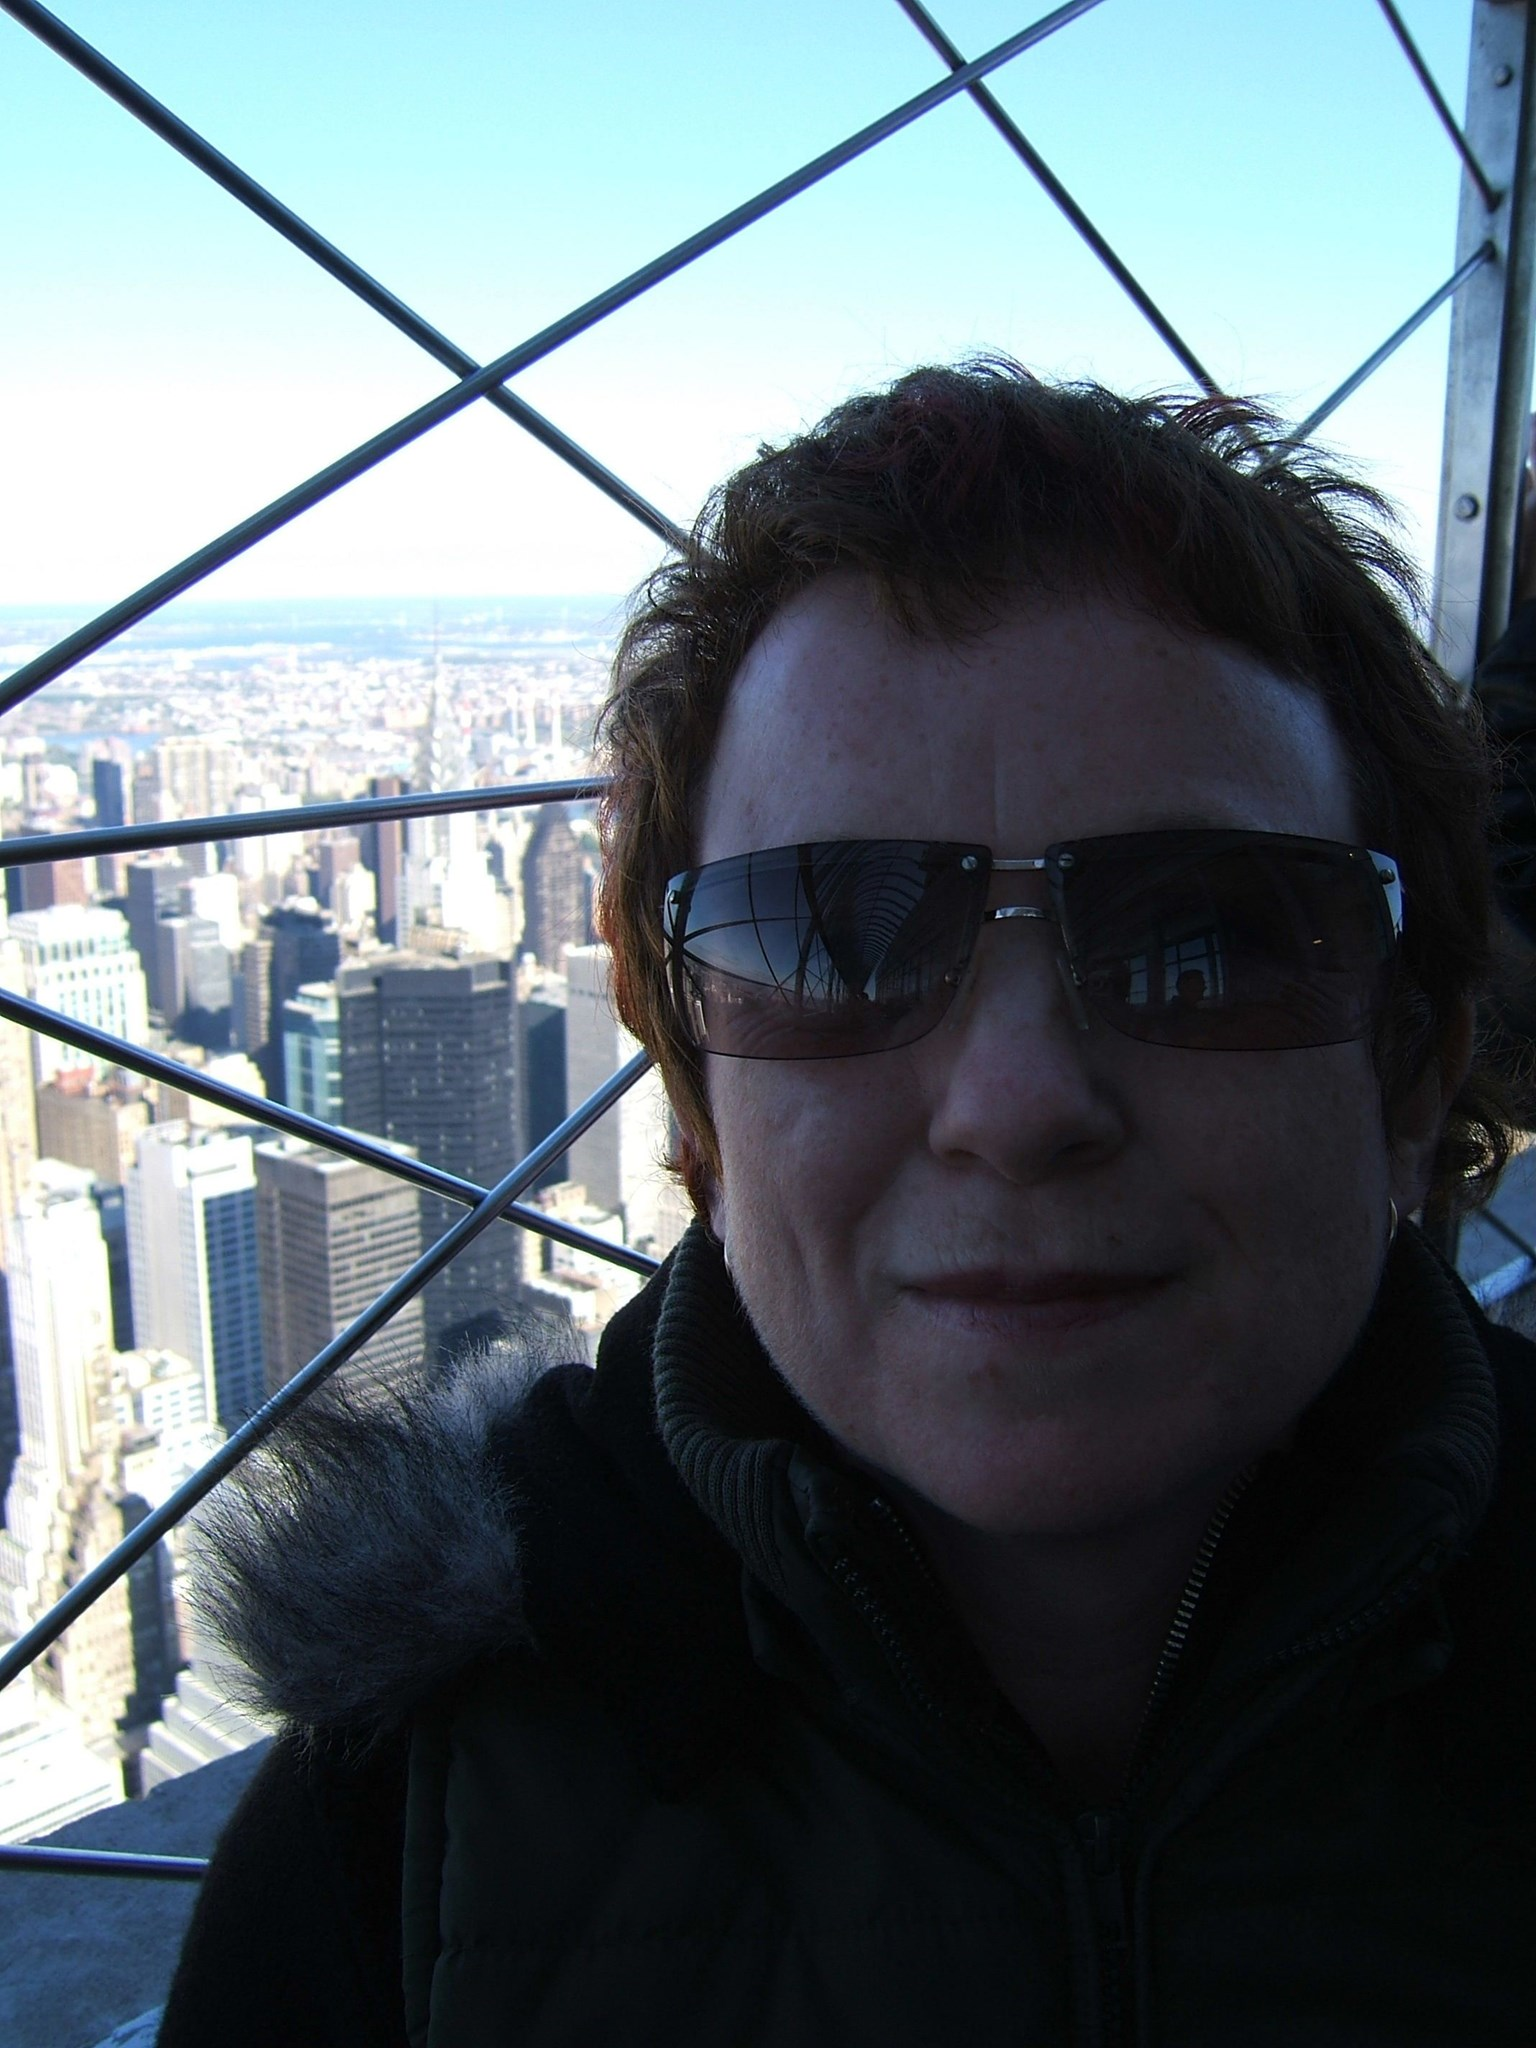 Carol at Top of Empire State Building   New York October 2005